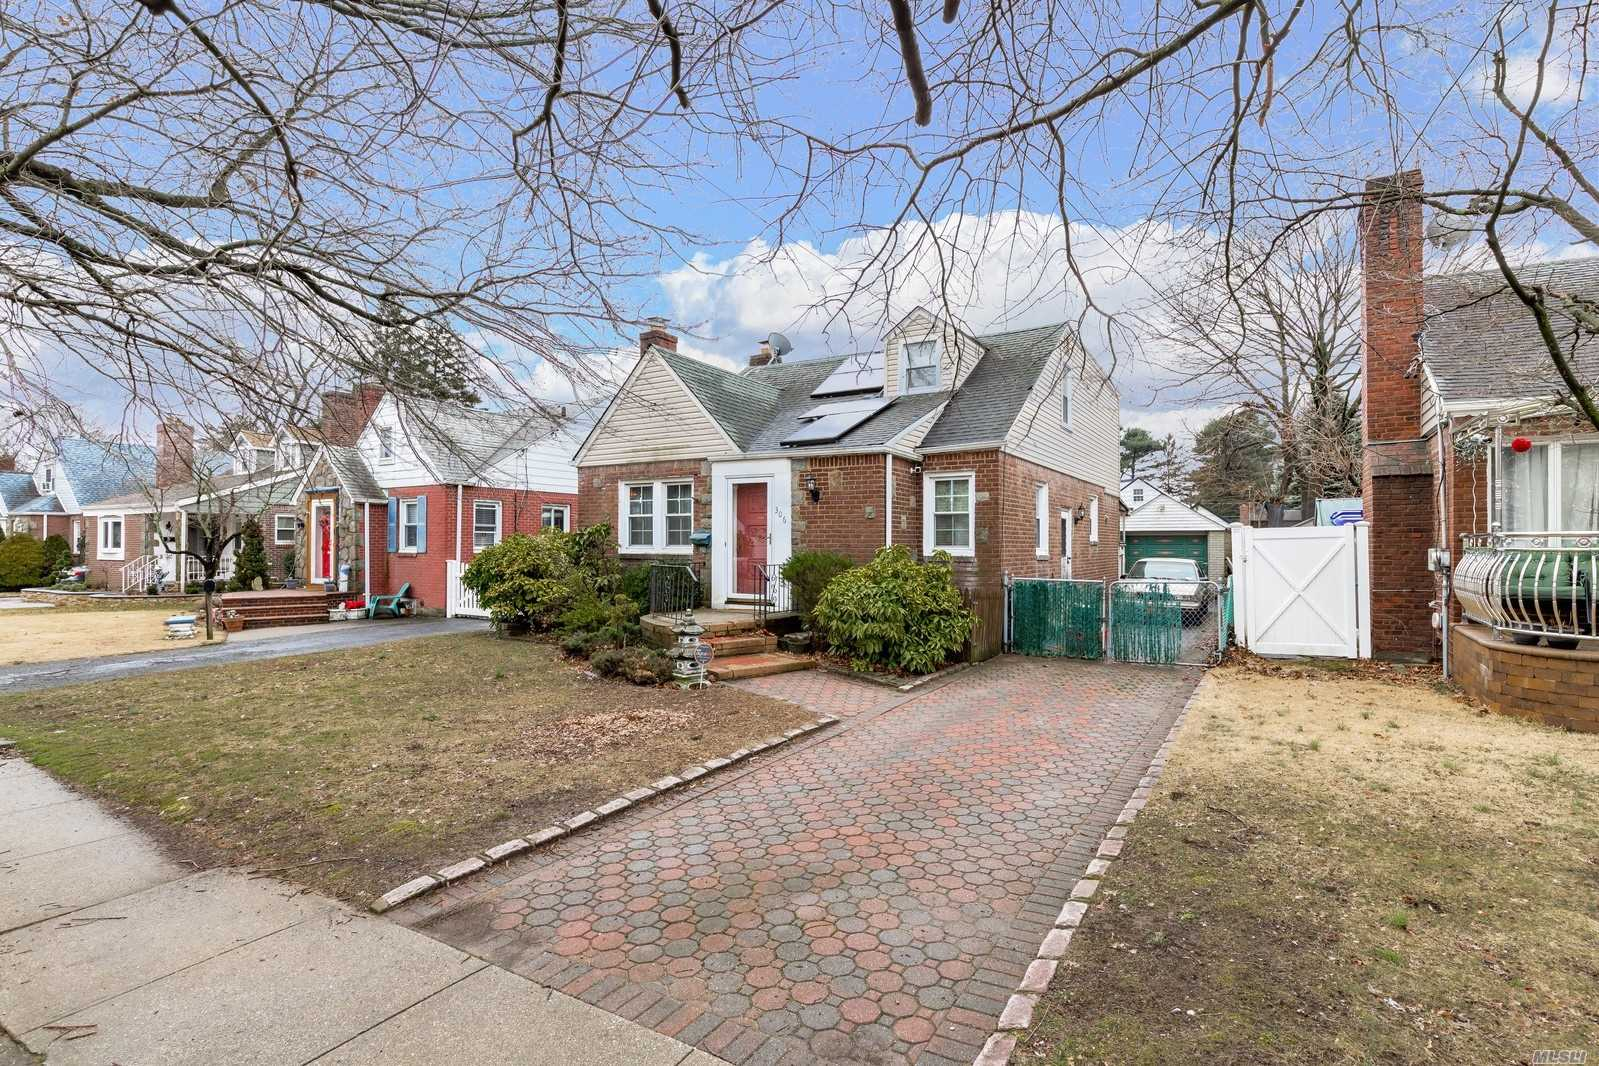 Charming Cape In The Heart Of West Hempstead! Fenced In Yard With Detached Garage. Amazing Pot Belly Stove In Back Room. Gas Cooking, Oil Heat, & Solar Panels! Walking Distance To Houses Of Worship. Close To The Long Island Rail Road And Much Much More!